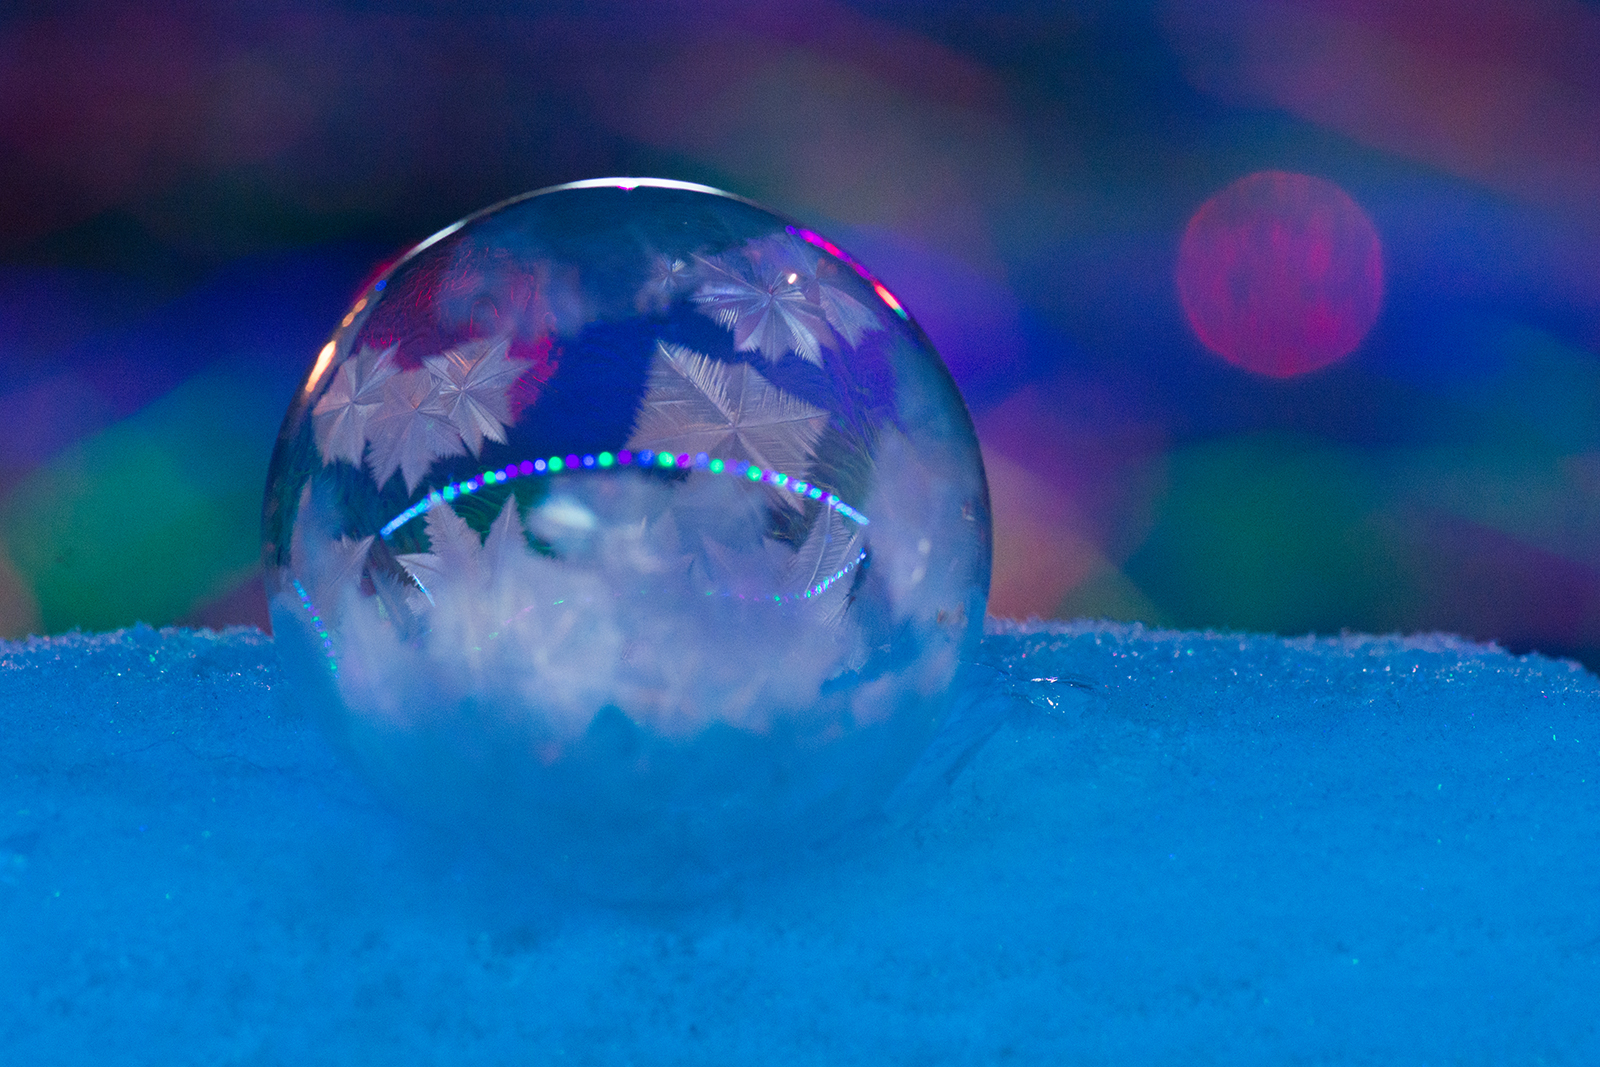 frozen soap bubble reflecting christmas lights